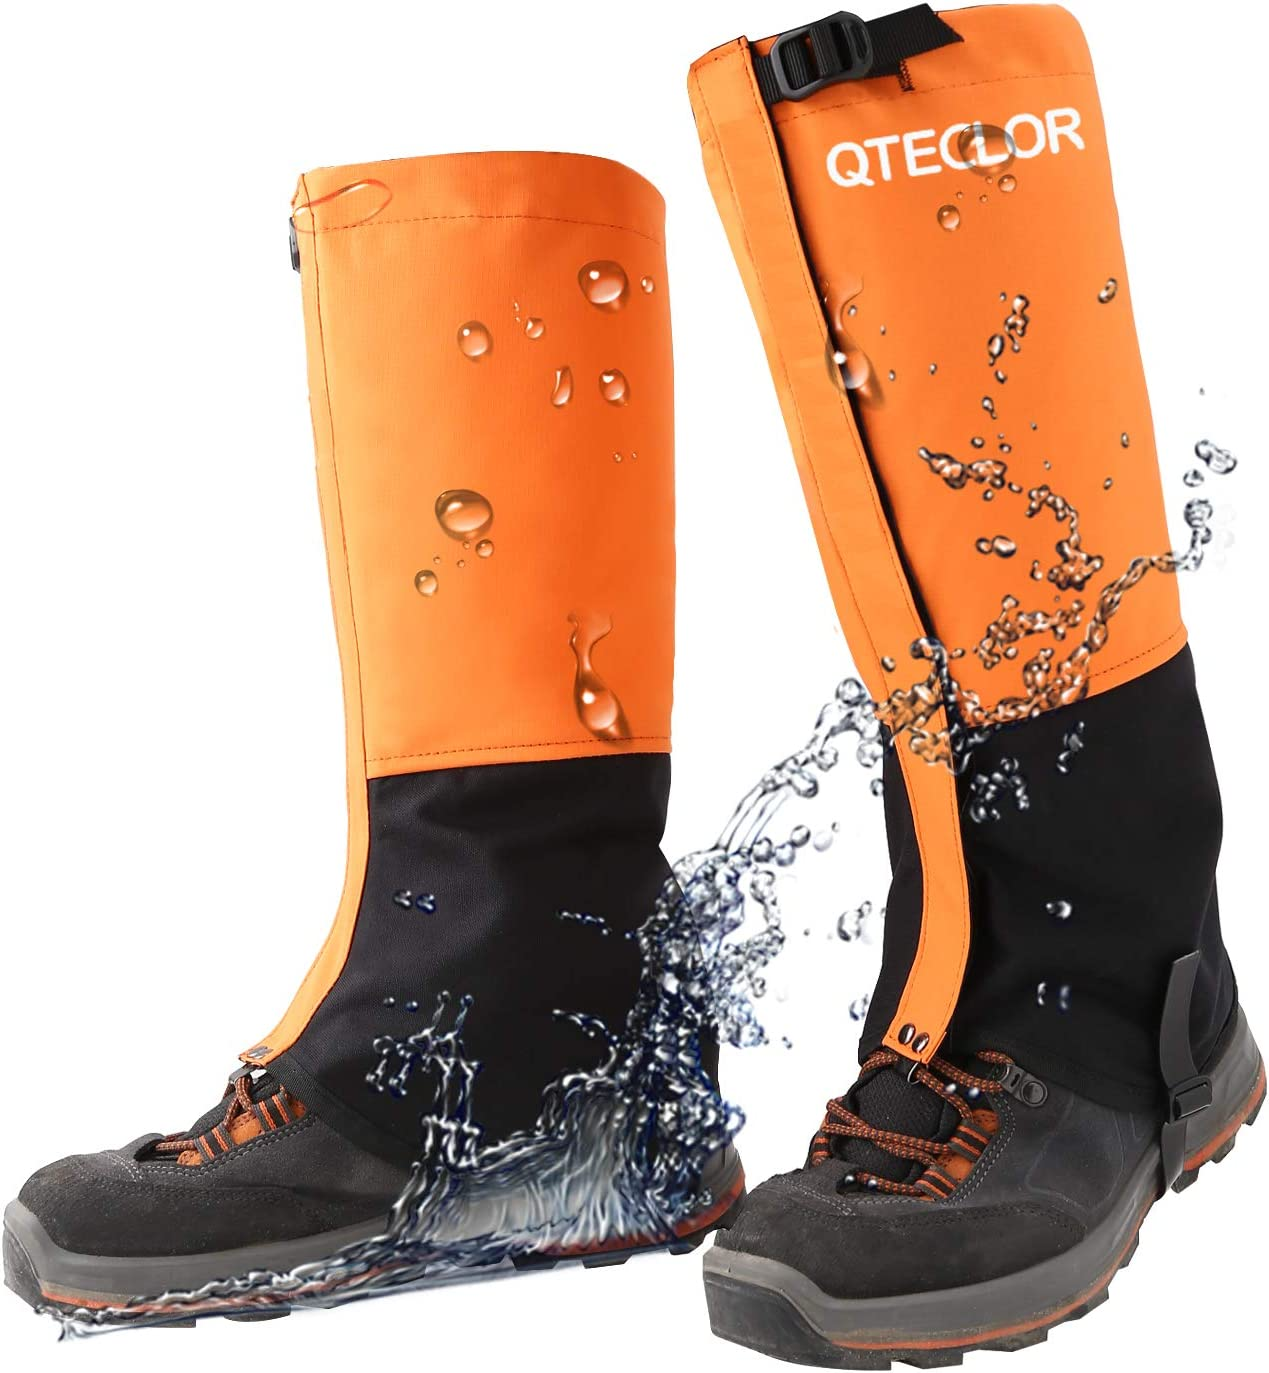 QTECLOR Leg Gaiters Waterproof Snow Boot Gaiters for Snowshoeing, Hiking, Hunting, Running, Motorcycle Anti-Tear Oxford Fabric, TPU Instep Belt Metal Shoelace Hook for Outdoor (Orange, L)